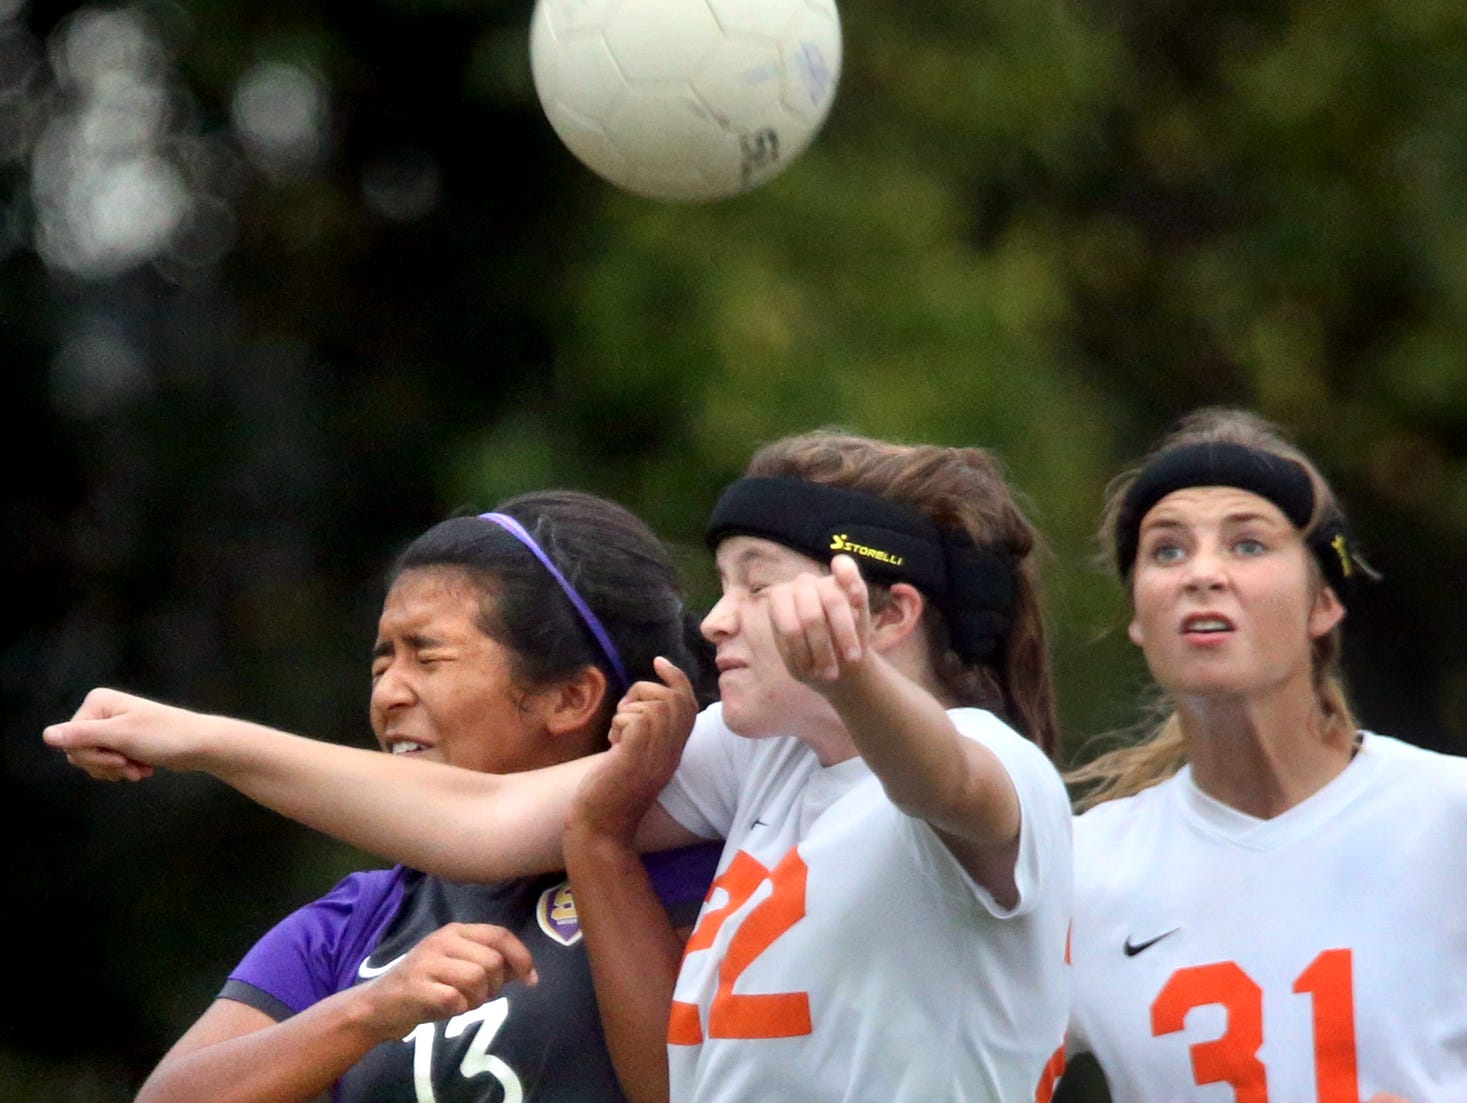 Smyrna's Brenda Cernas (13) and Blackman's Emily Nash (22) both try to head the ball as Blackman's Amelia Goodnight (31) watches from behind during the first half Monday at Blackman.